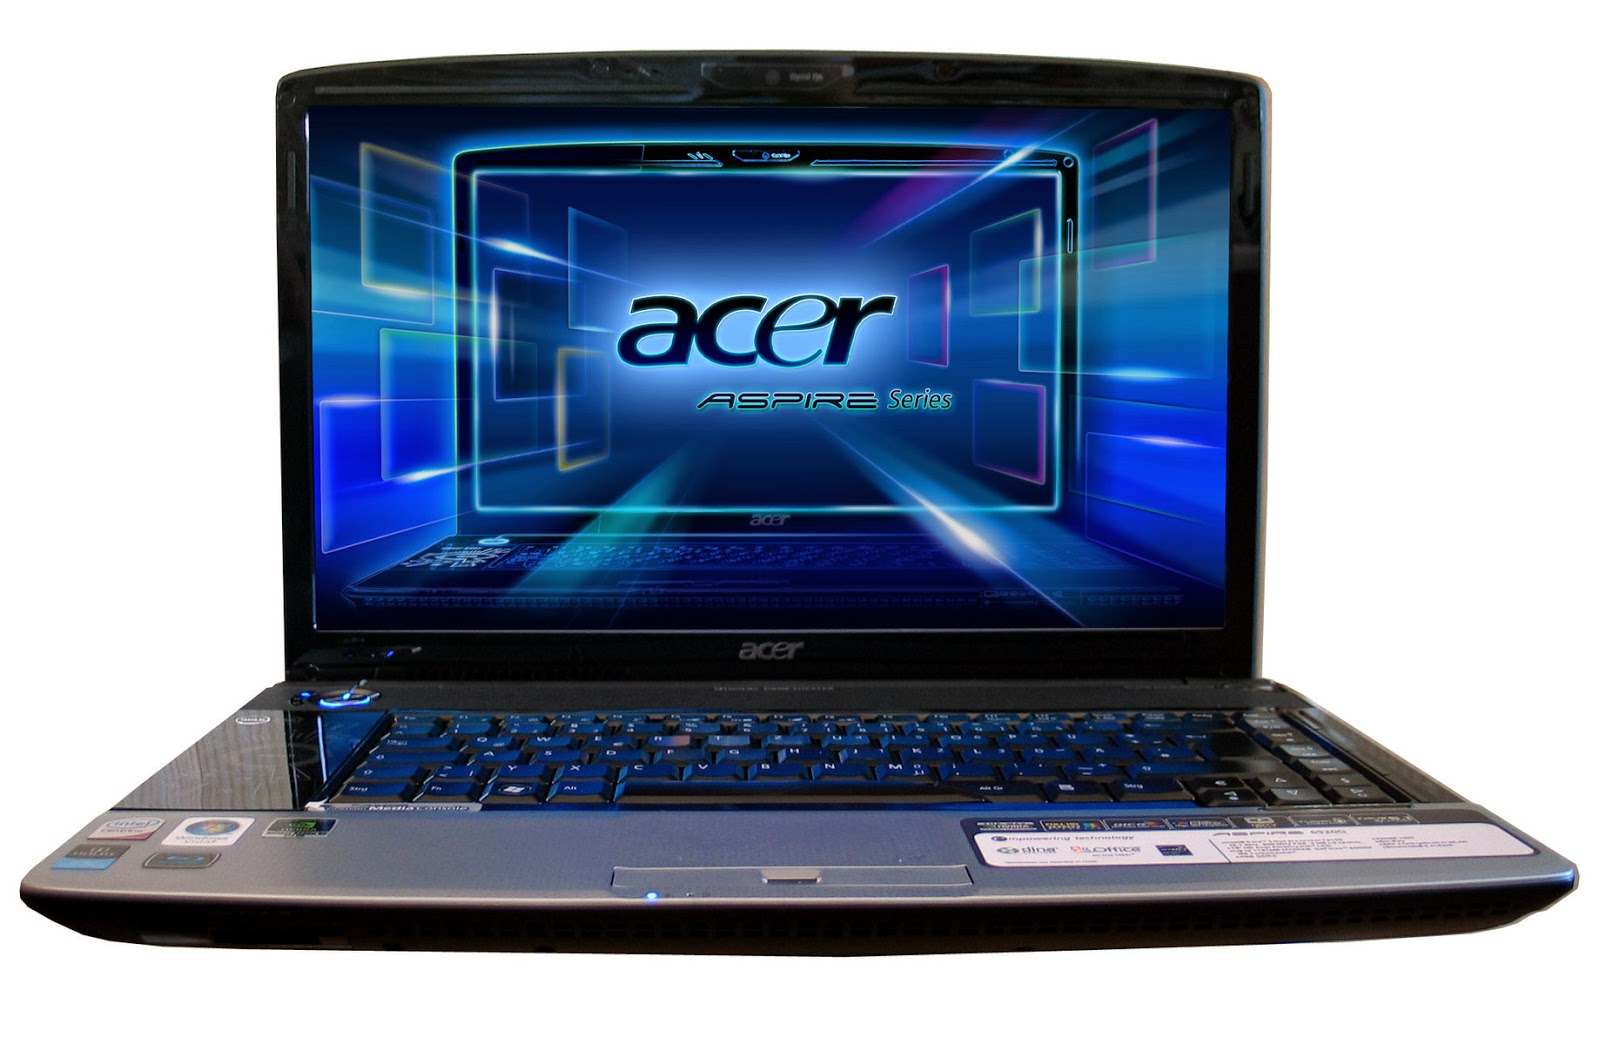 Download Acer Aspire E1-472G Drivers for Windows 7/8 and Xp - All Laptop Drivers